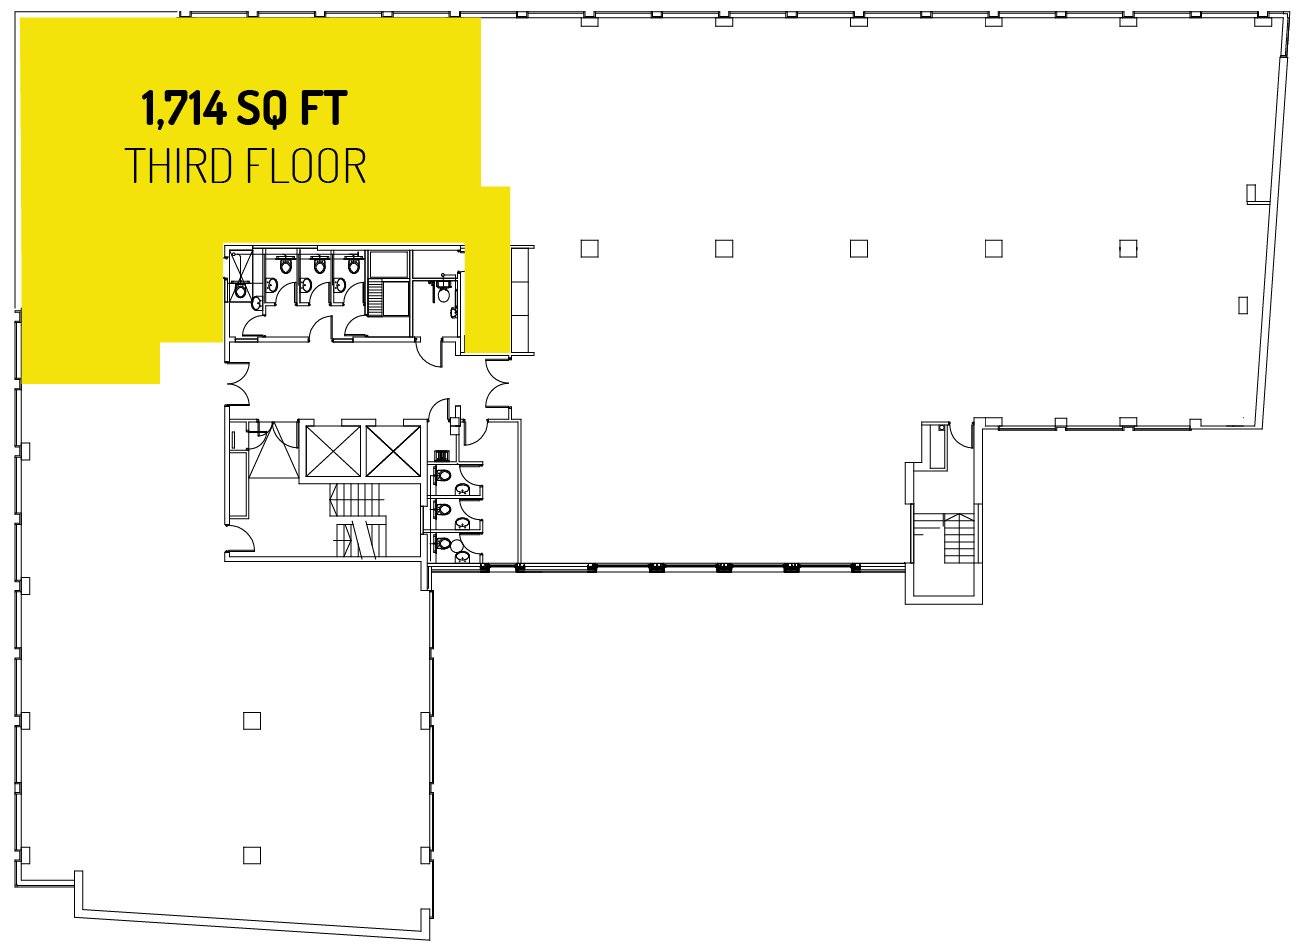 1,714 sq ft on the third floor